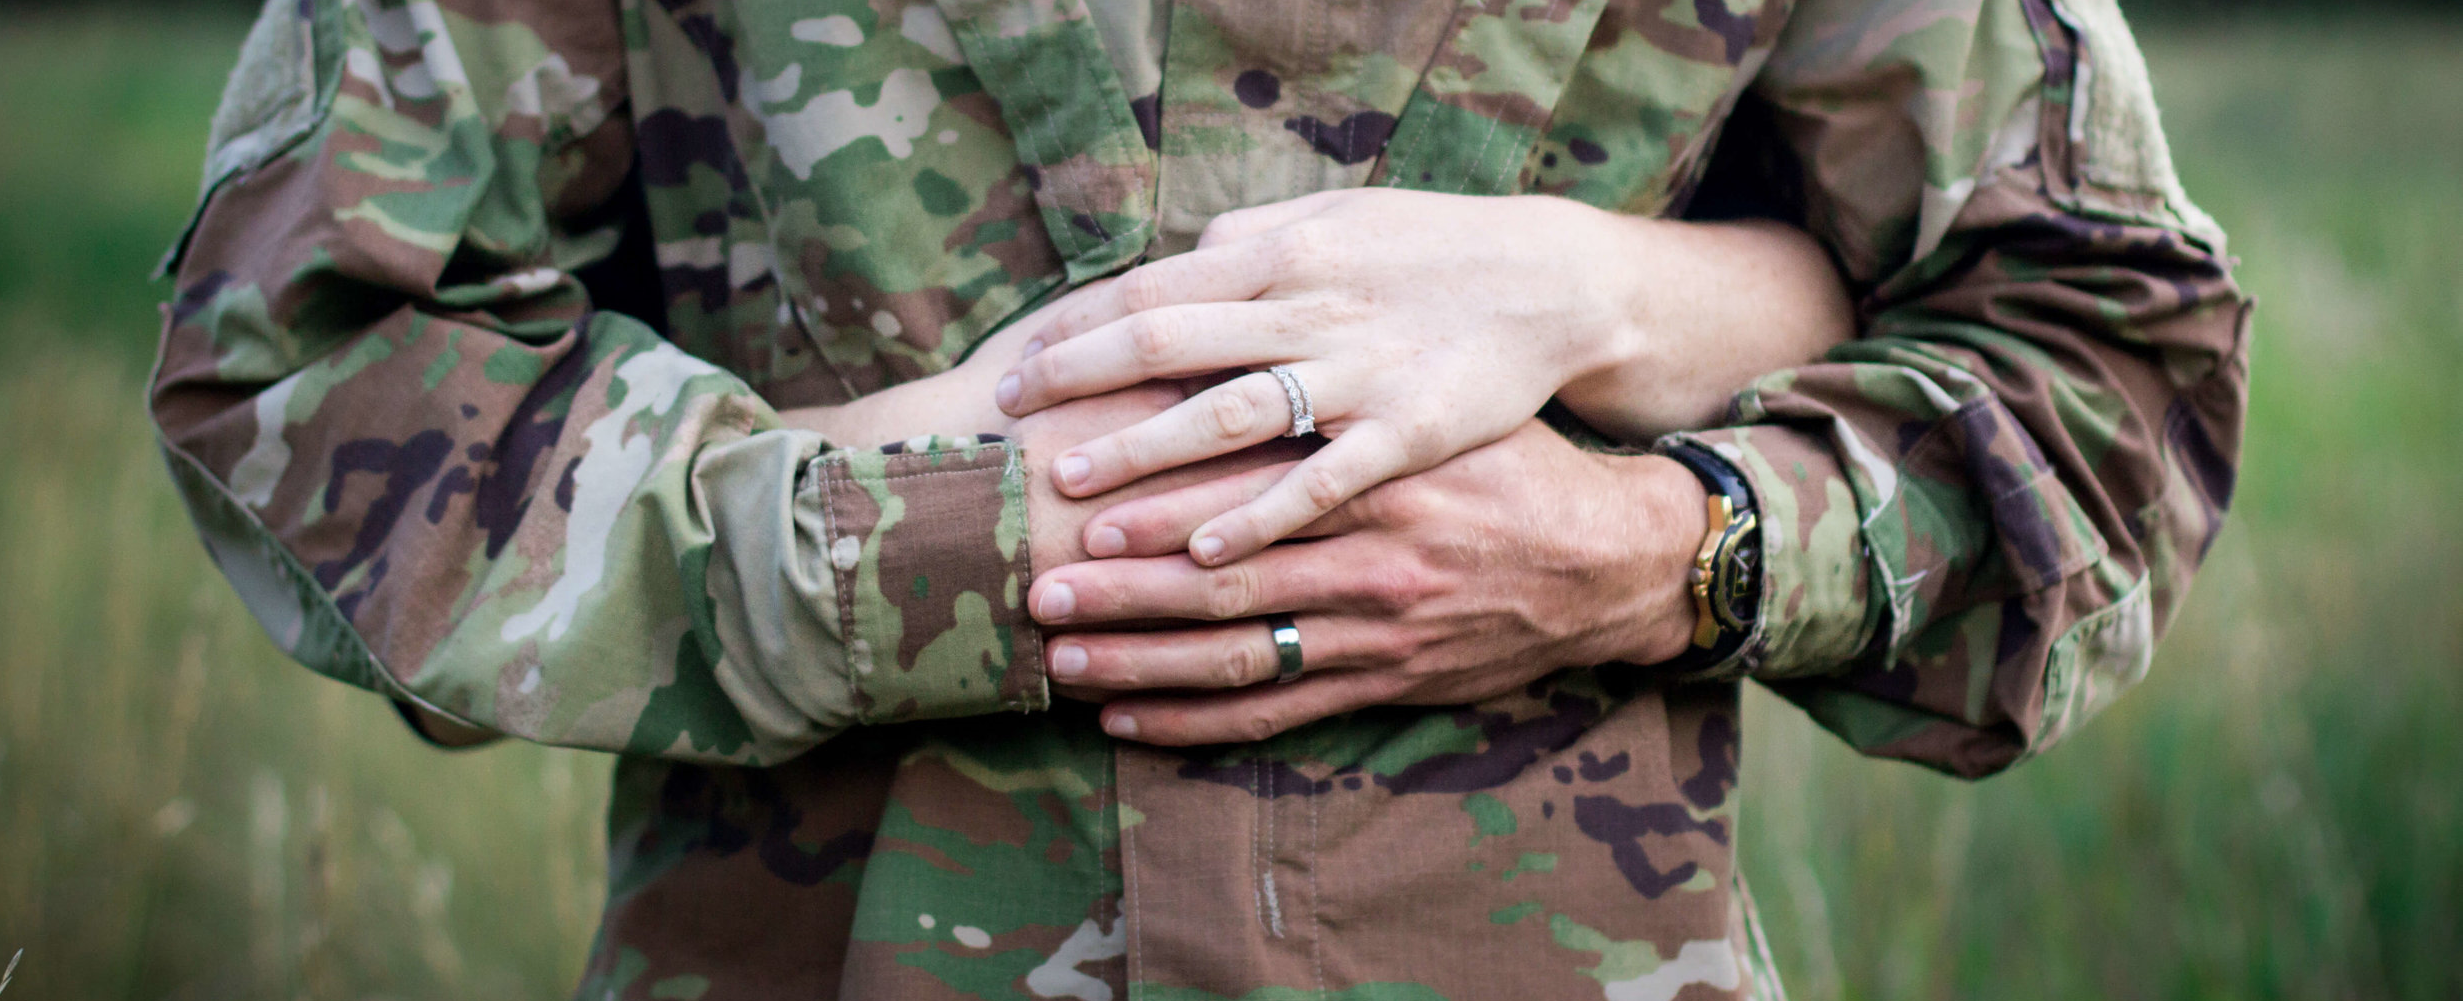 REAL LIFE TOOLS<br> for REAL LIFE CHALLENGES<br> faced by Veteran and Military Couples